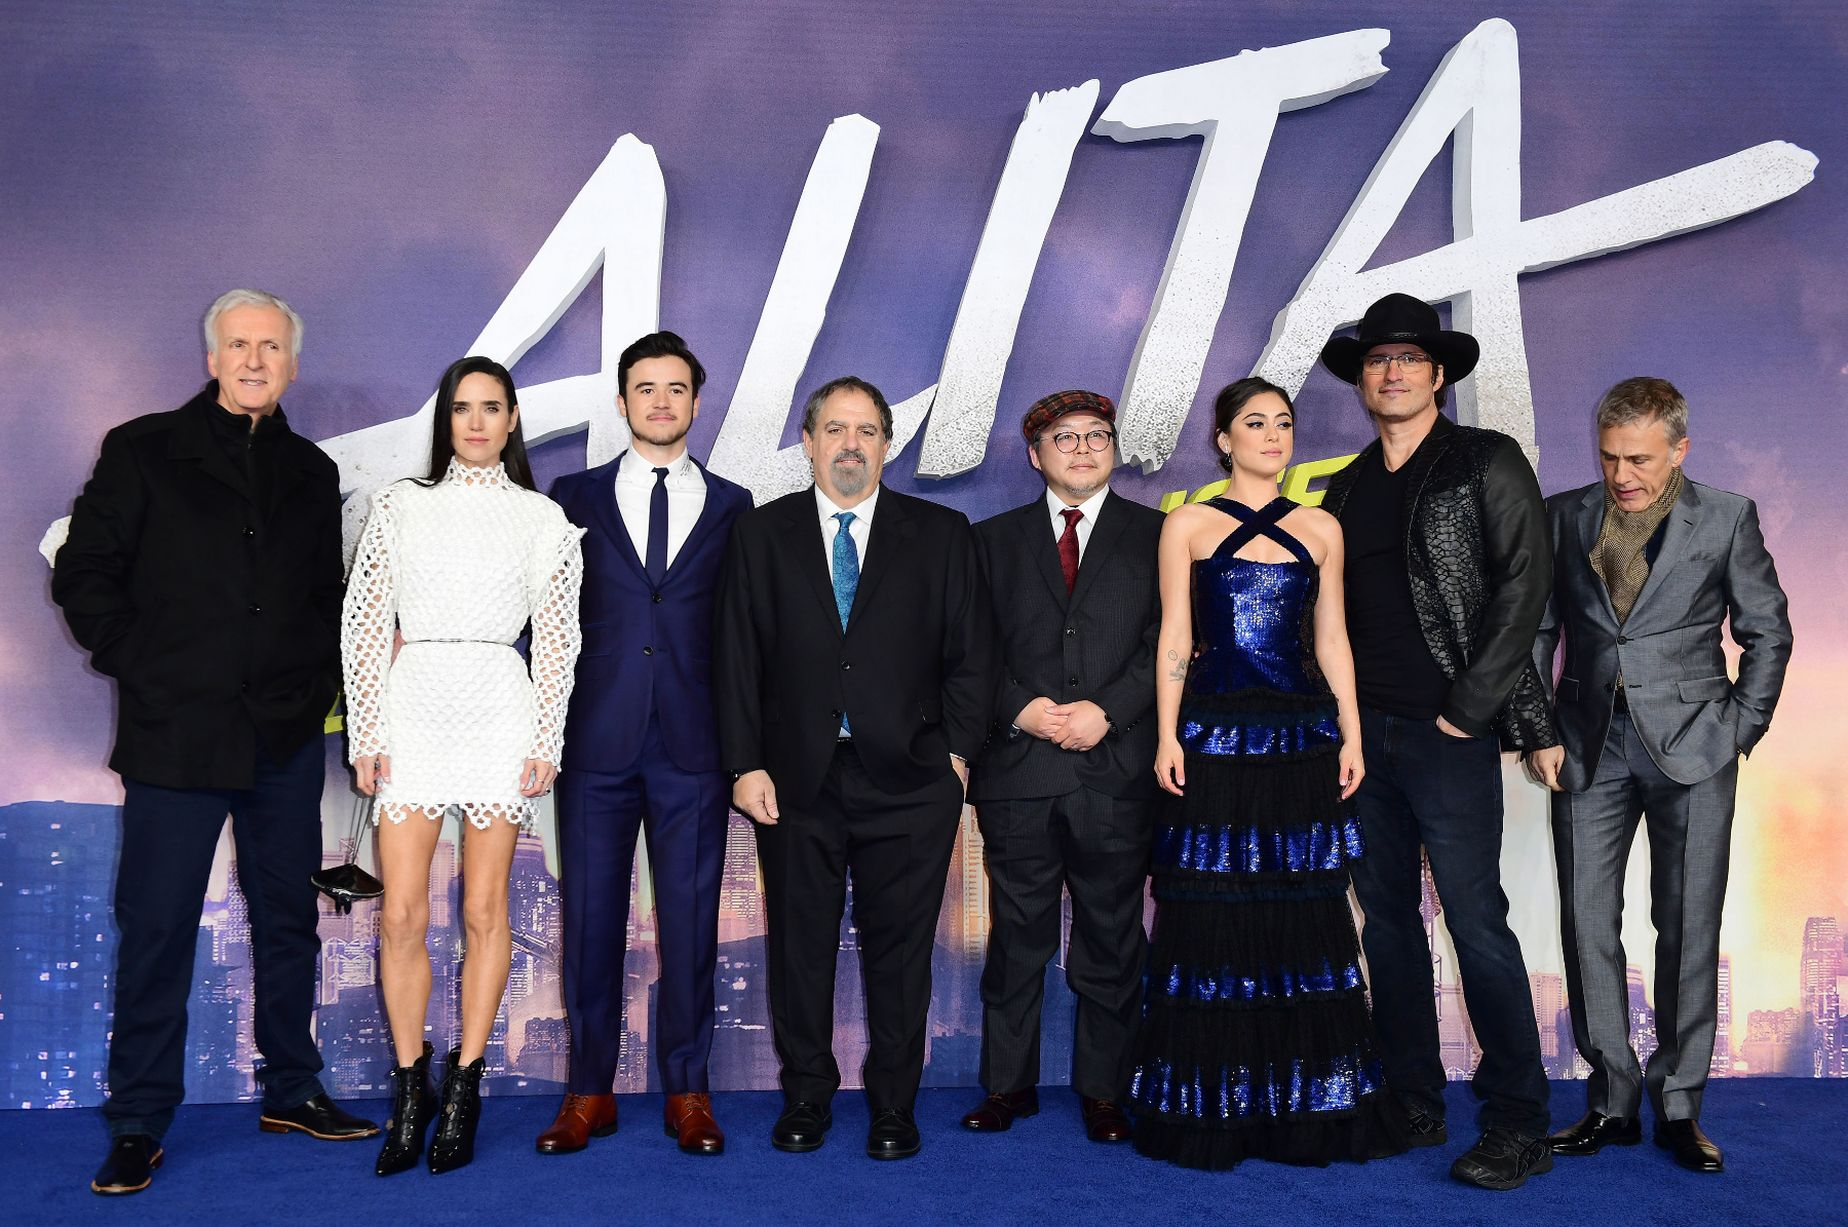 Cast Support for Alita Battle Angel 2